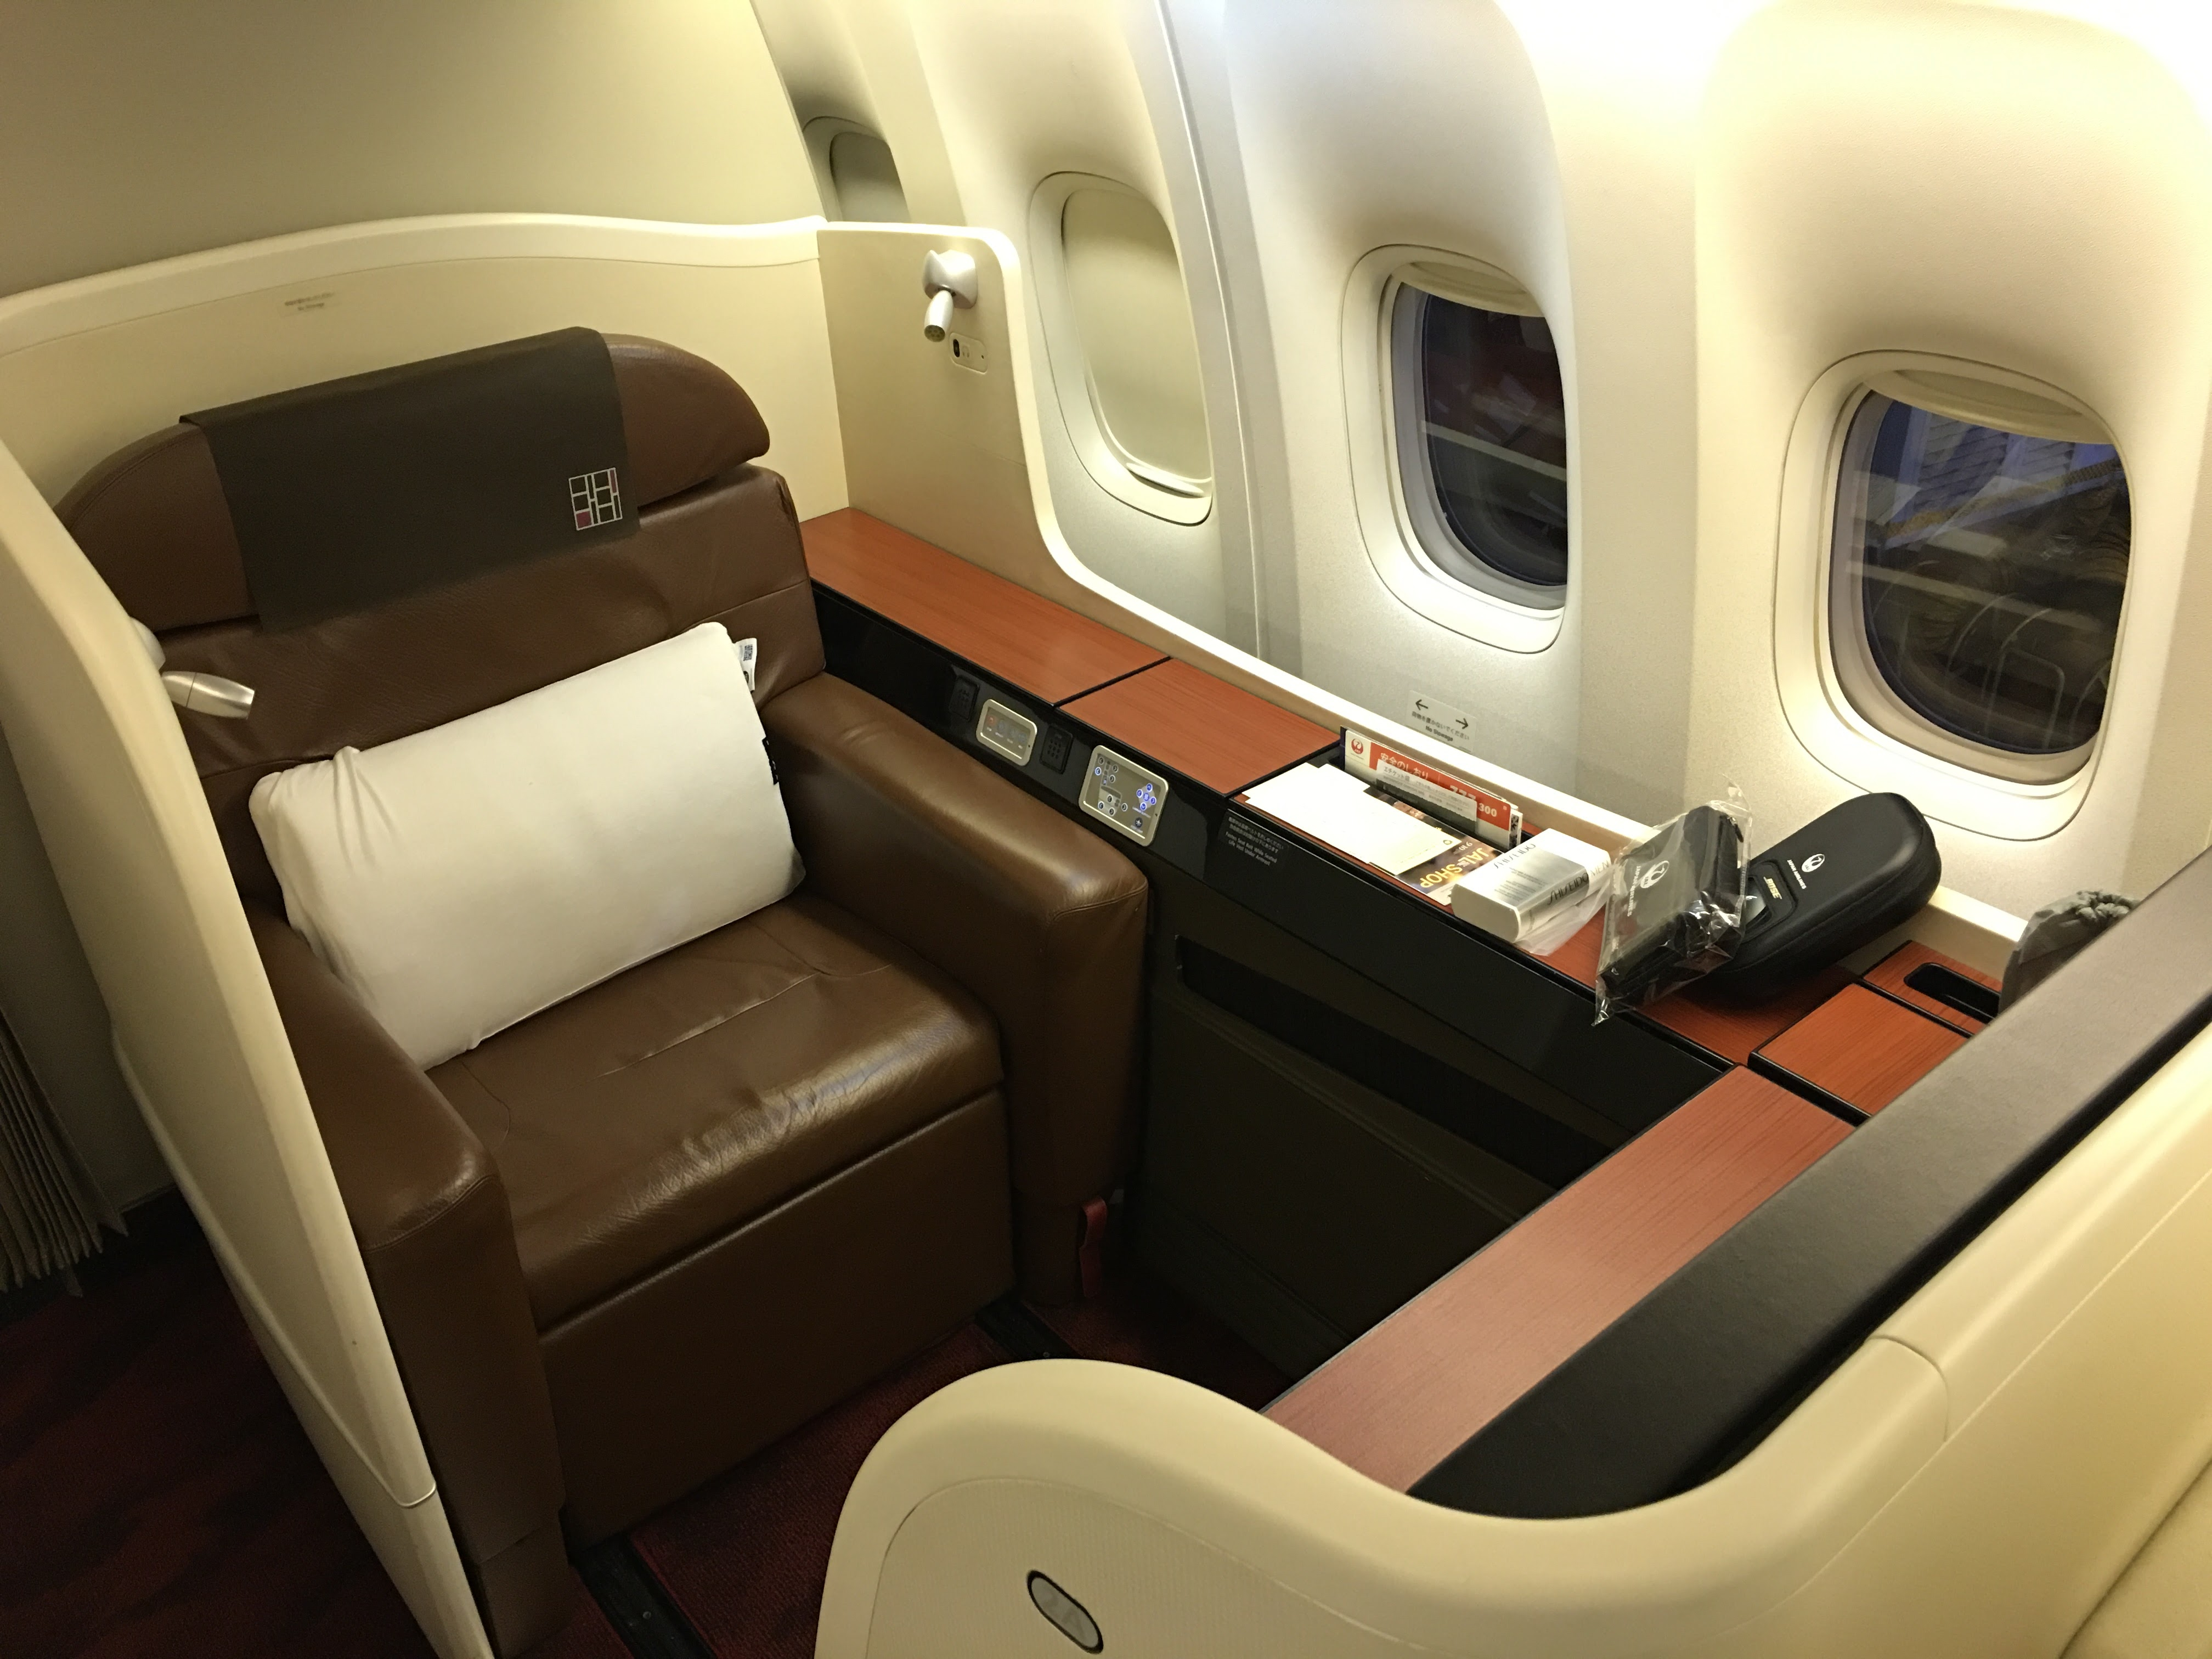 Japan Airlines JAL First Class Boeing 777 300ER San Francisco SFO To Tokyo Haneda HND Review